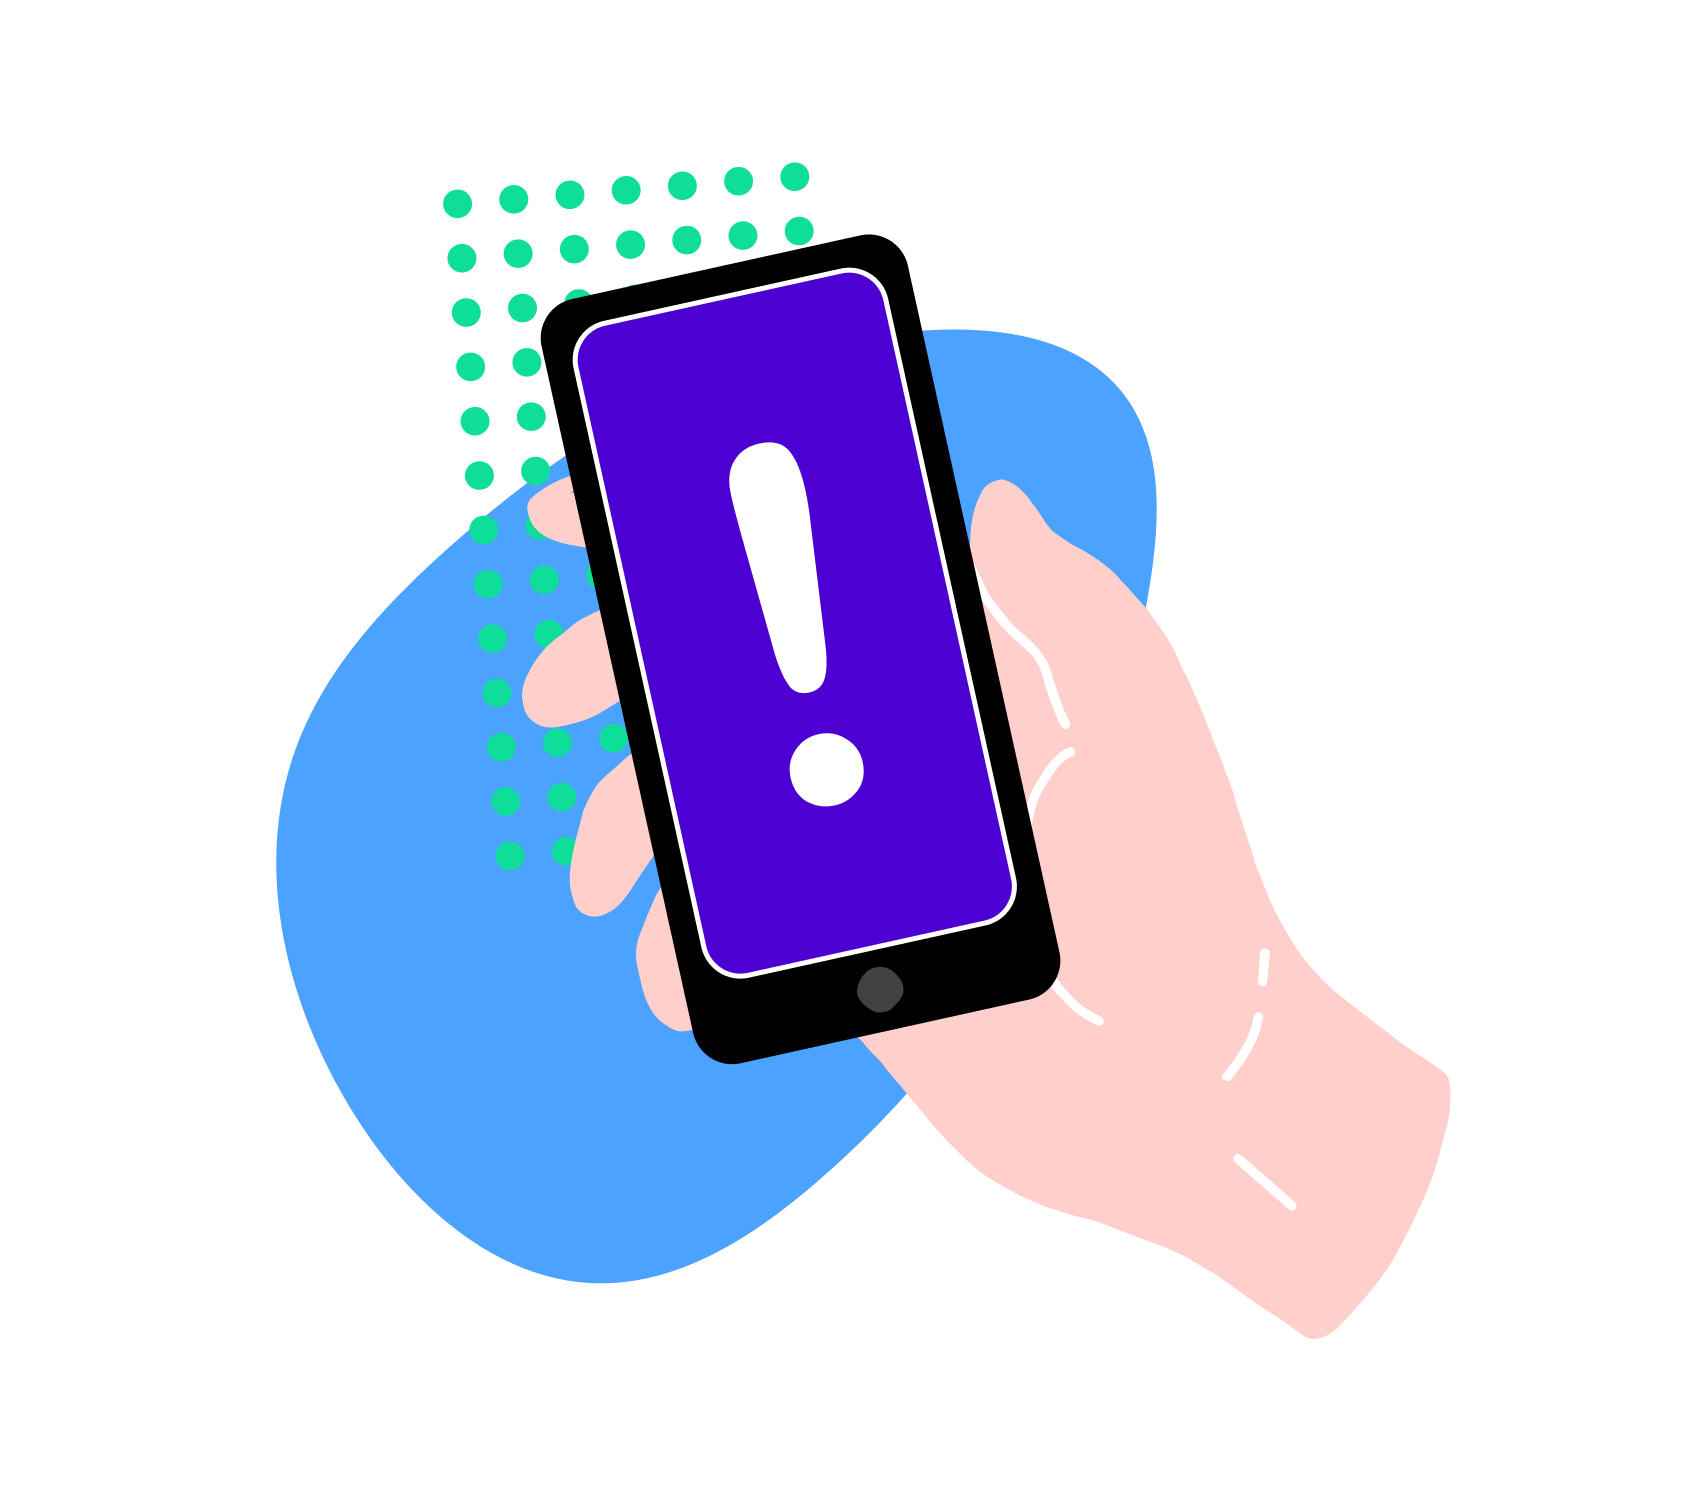 Illustration of a hand holding a phone with an alert message